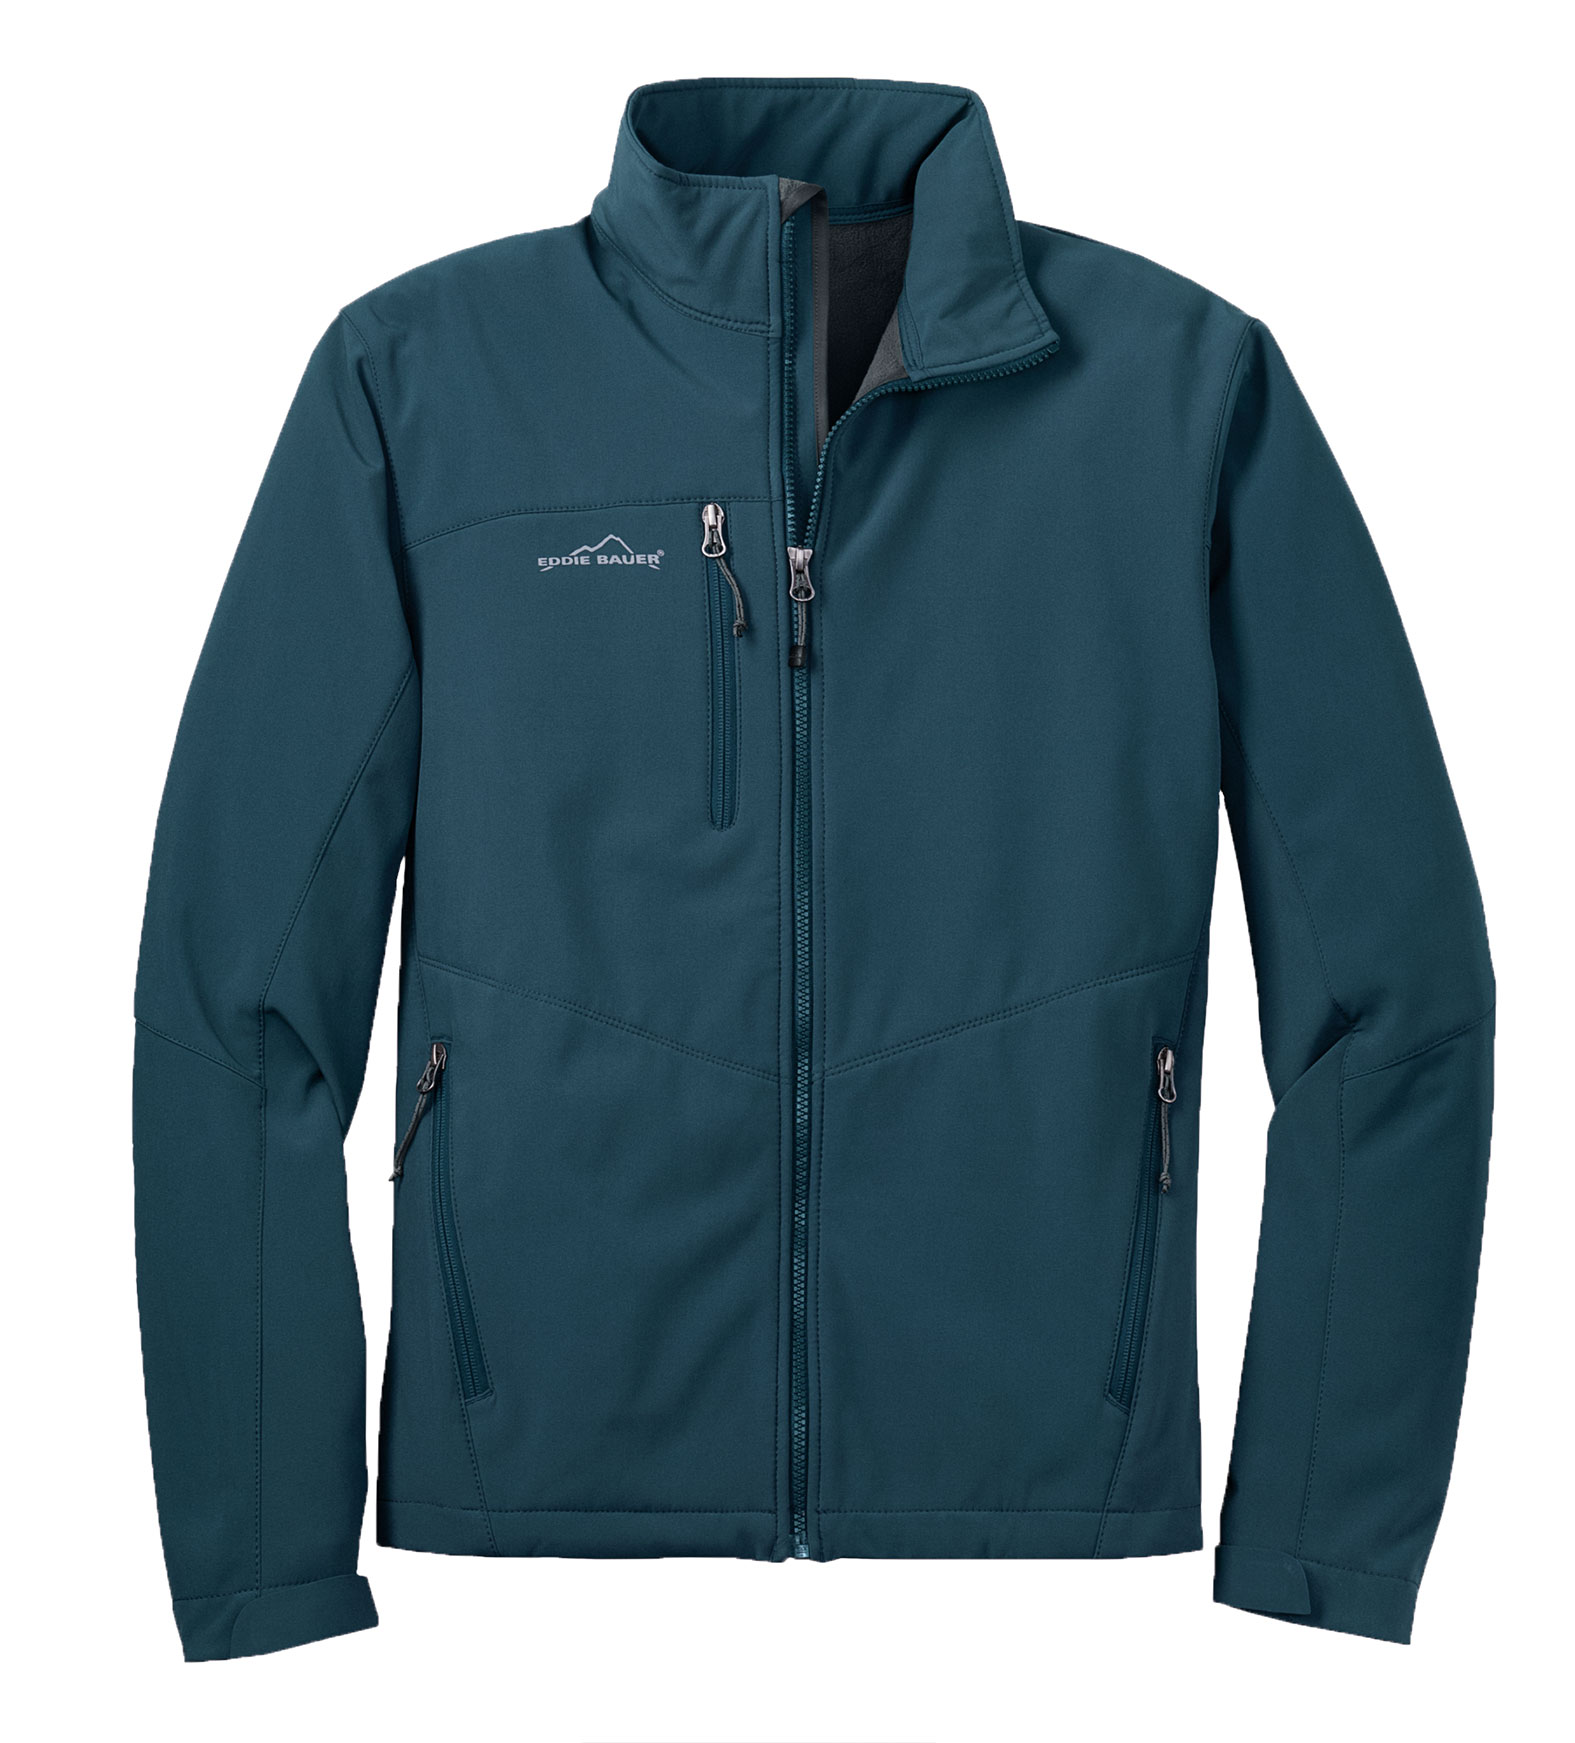 Eddie Bauer� Mens Soft Shell Jacket